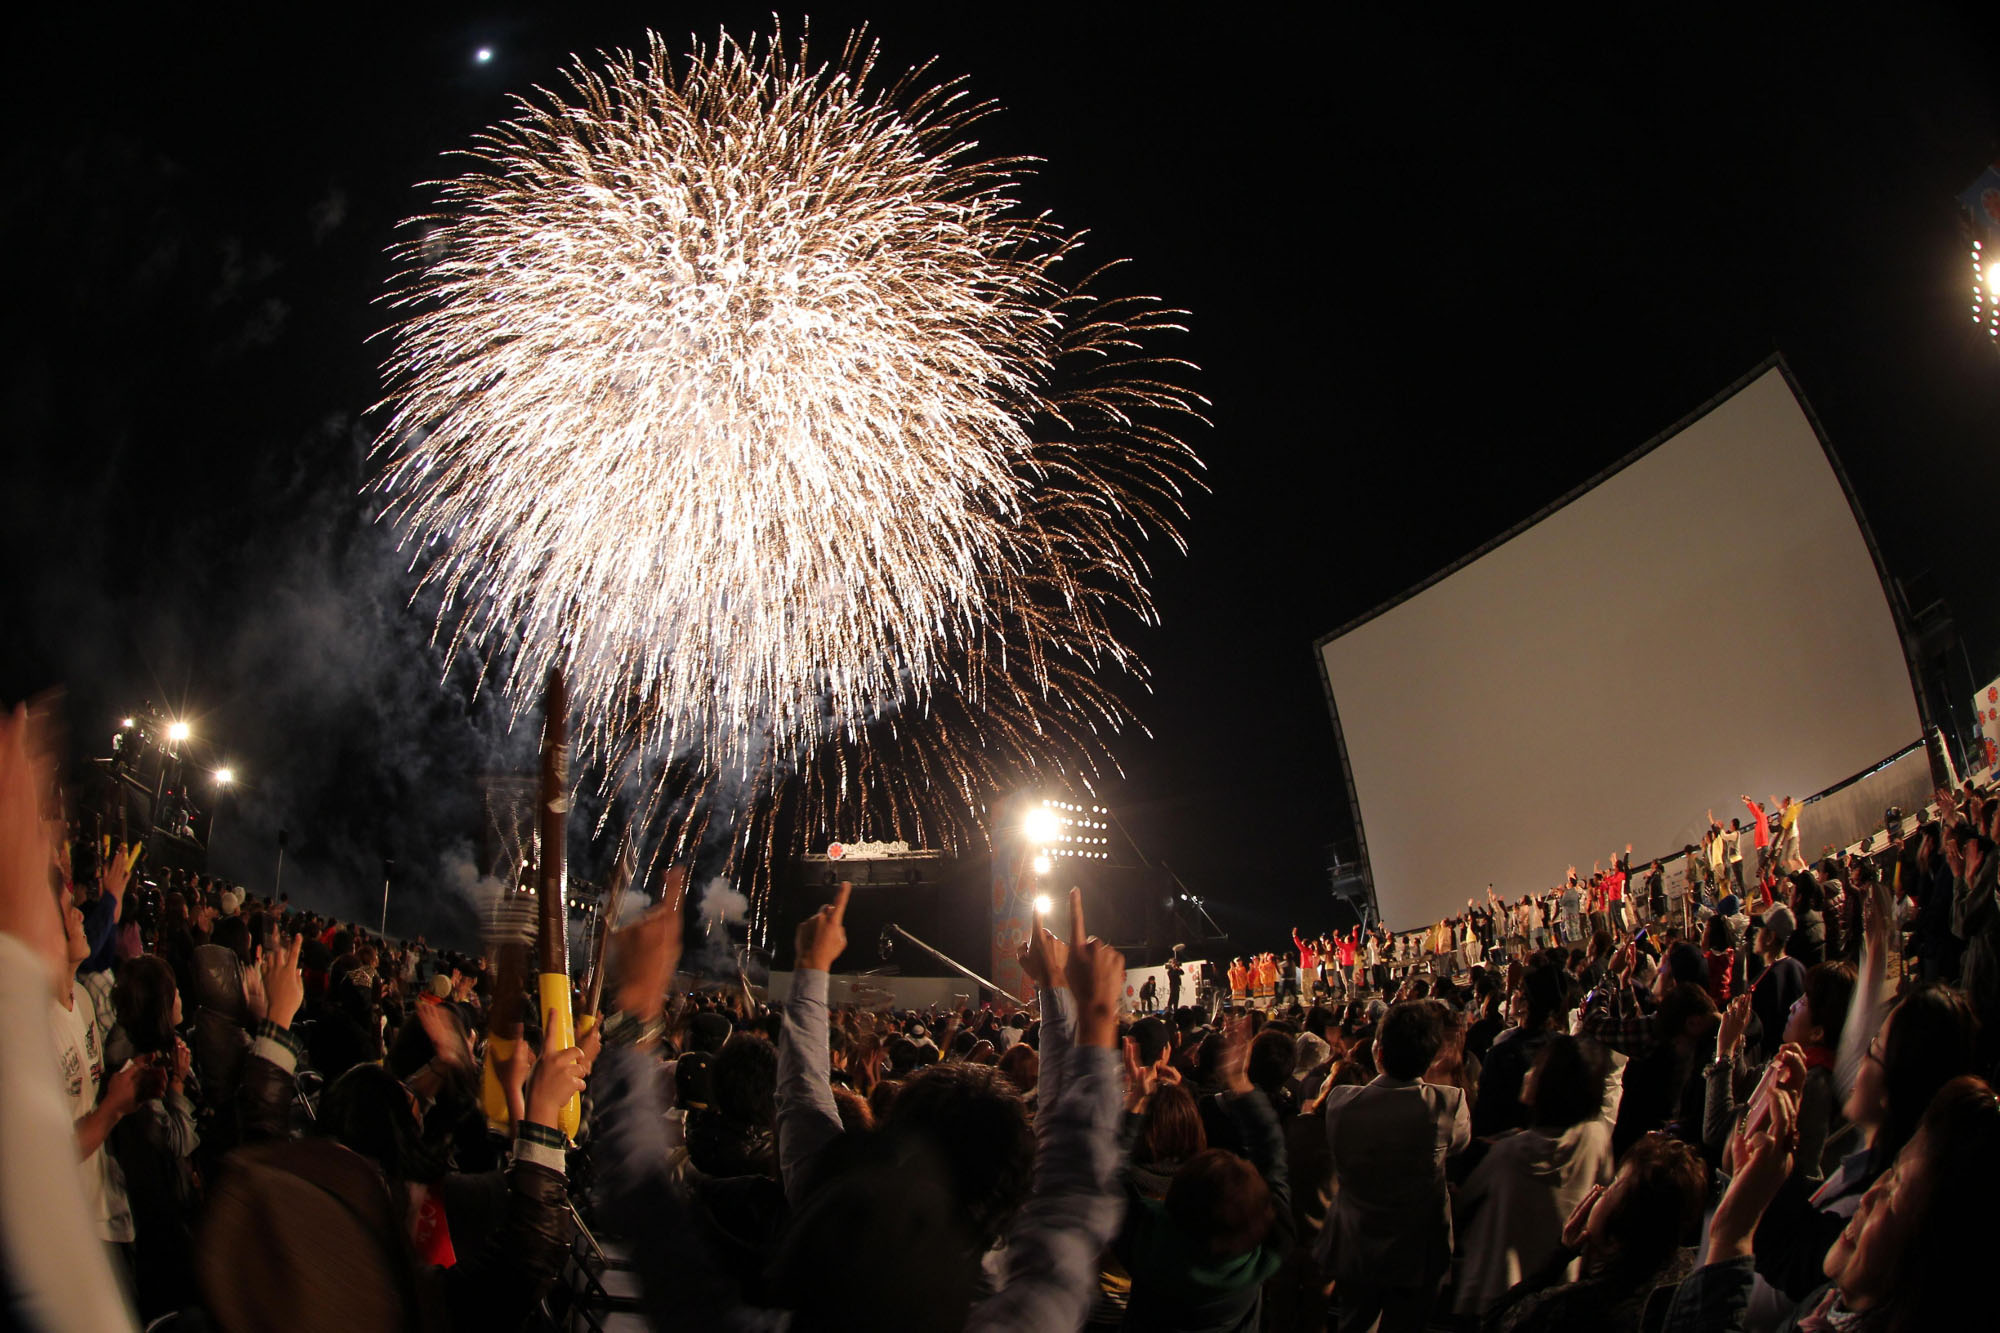 Something in the air: Okinawa International Movie Festival 2012 closes with a bang. | ©2012 OKINAWA INTERNATIONAL MOVIE FESTIVAL / YOSHIMOTO LAUGH & PEACE CO., LTD